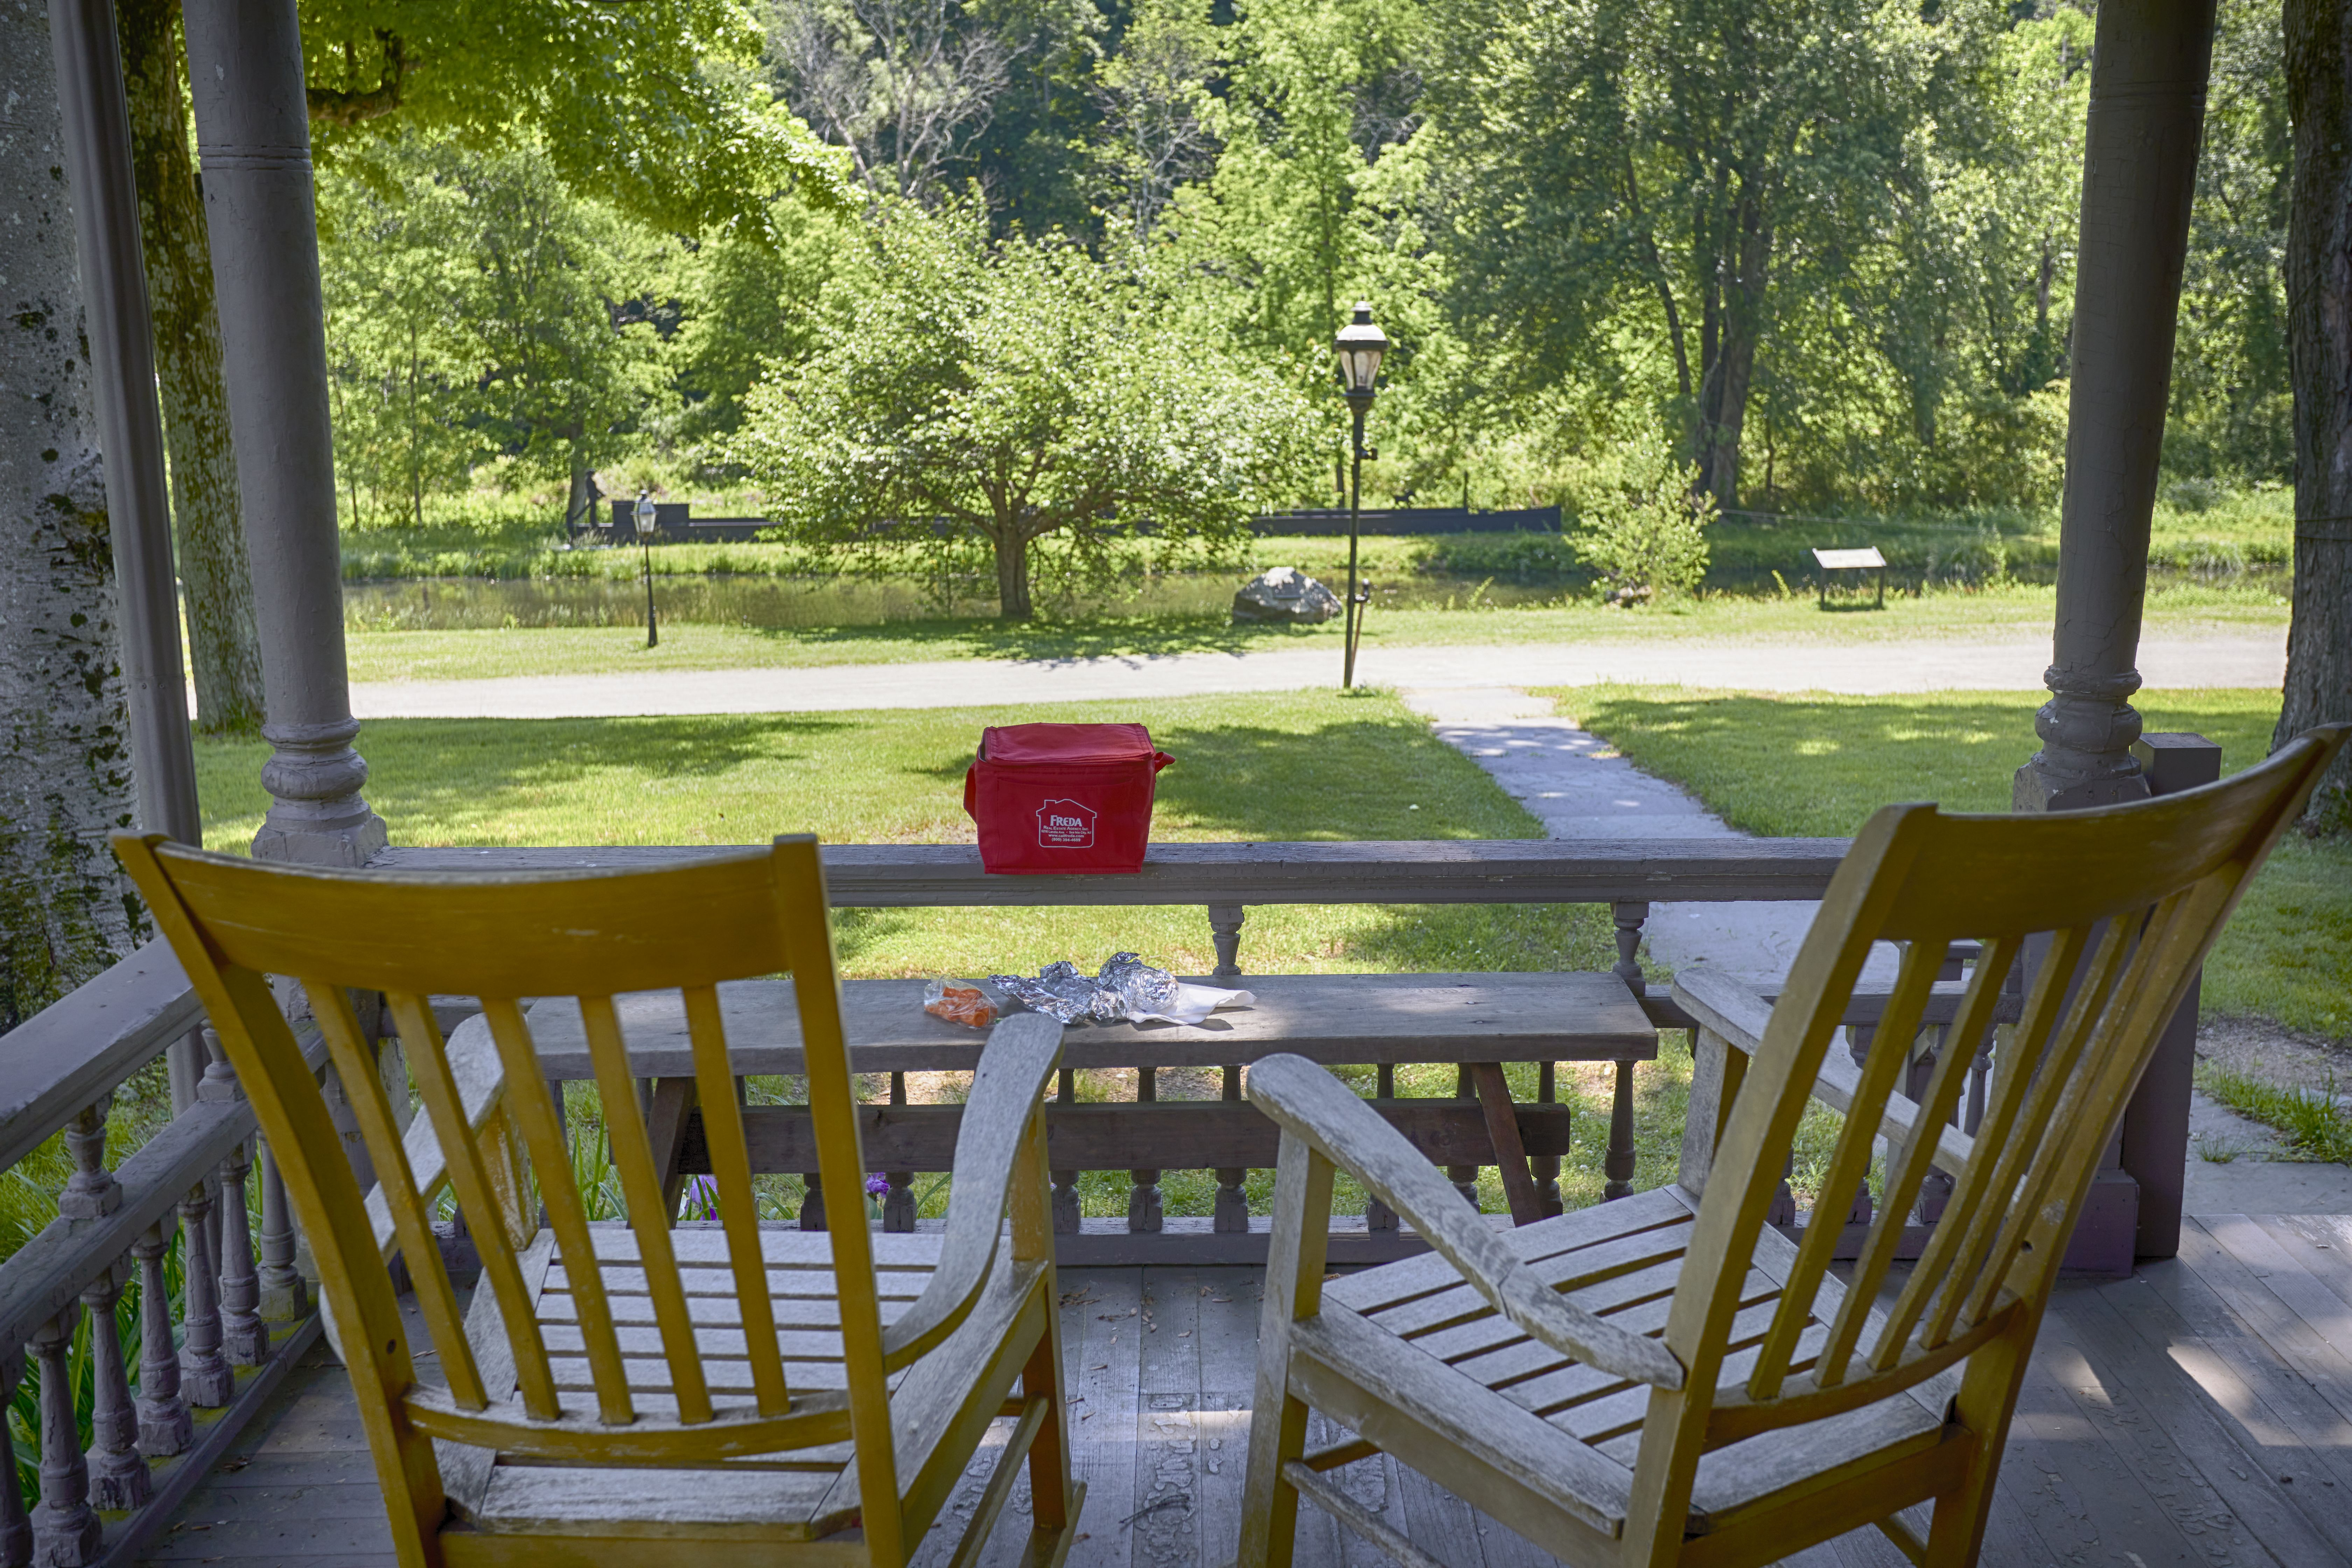 Two rocking chairs on porch, with picnic lunch on small table.